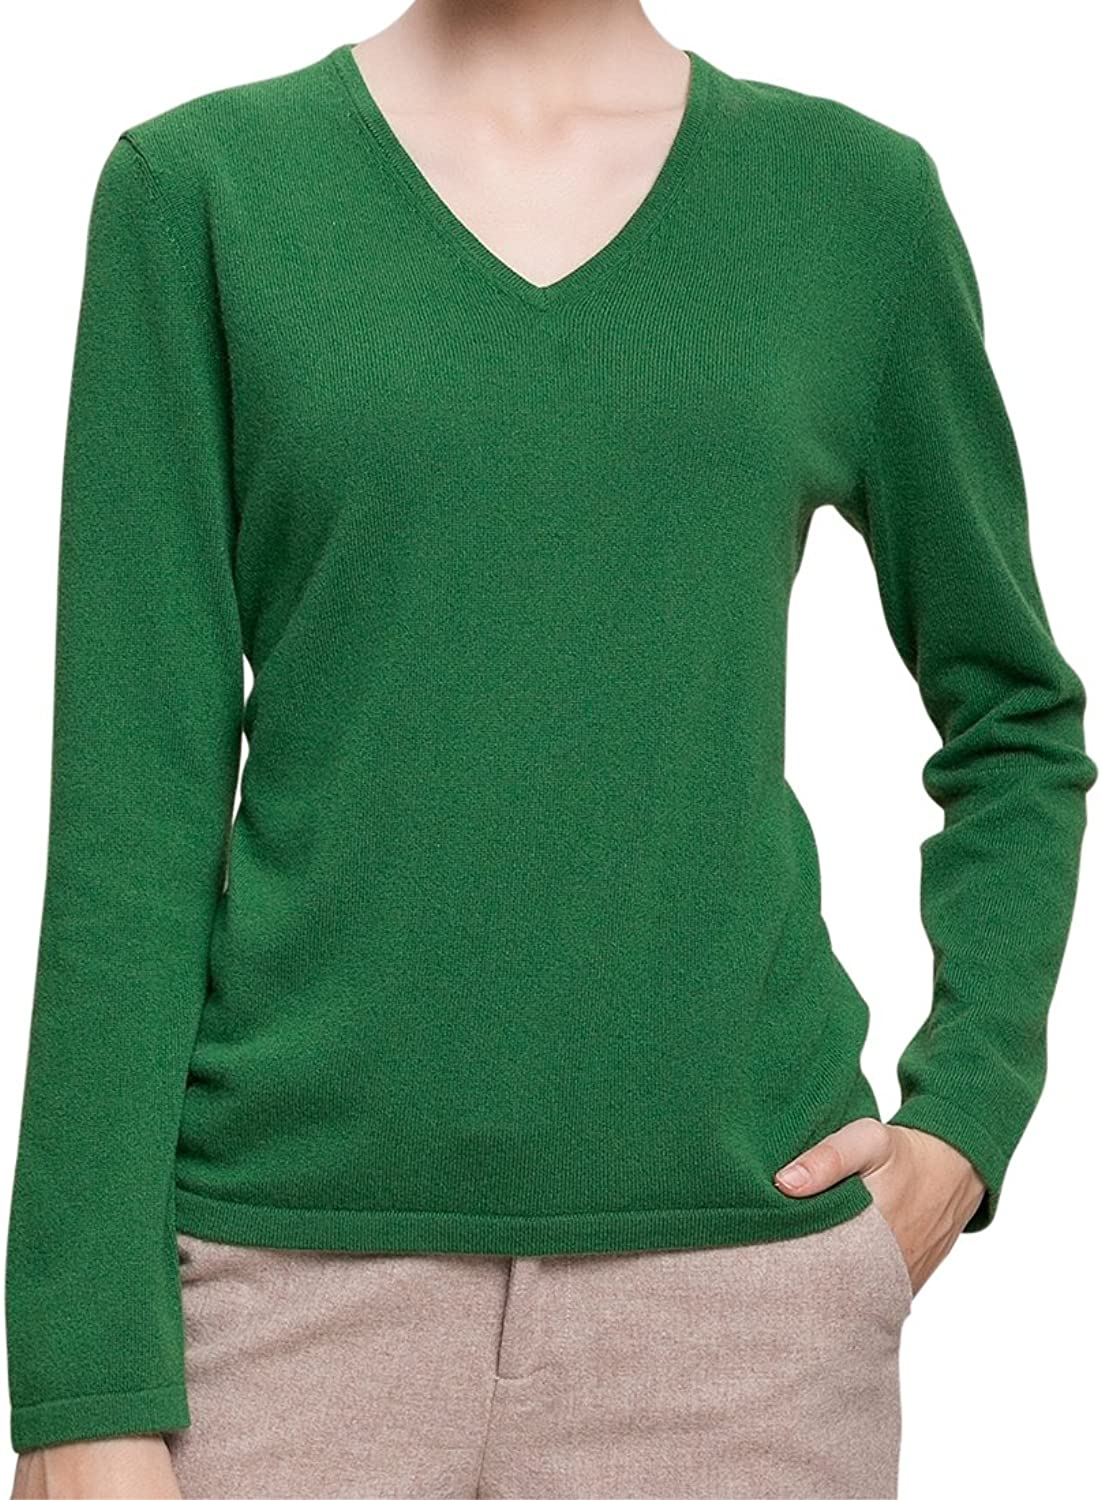 SpringAir Women's 100% Cashmere Long Sleeve Solid color Thin VNeck Sweater